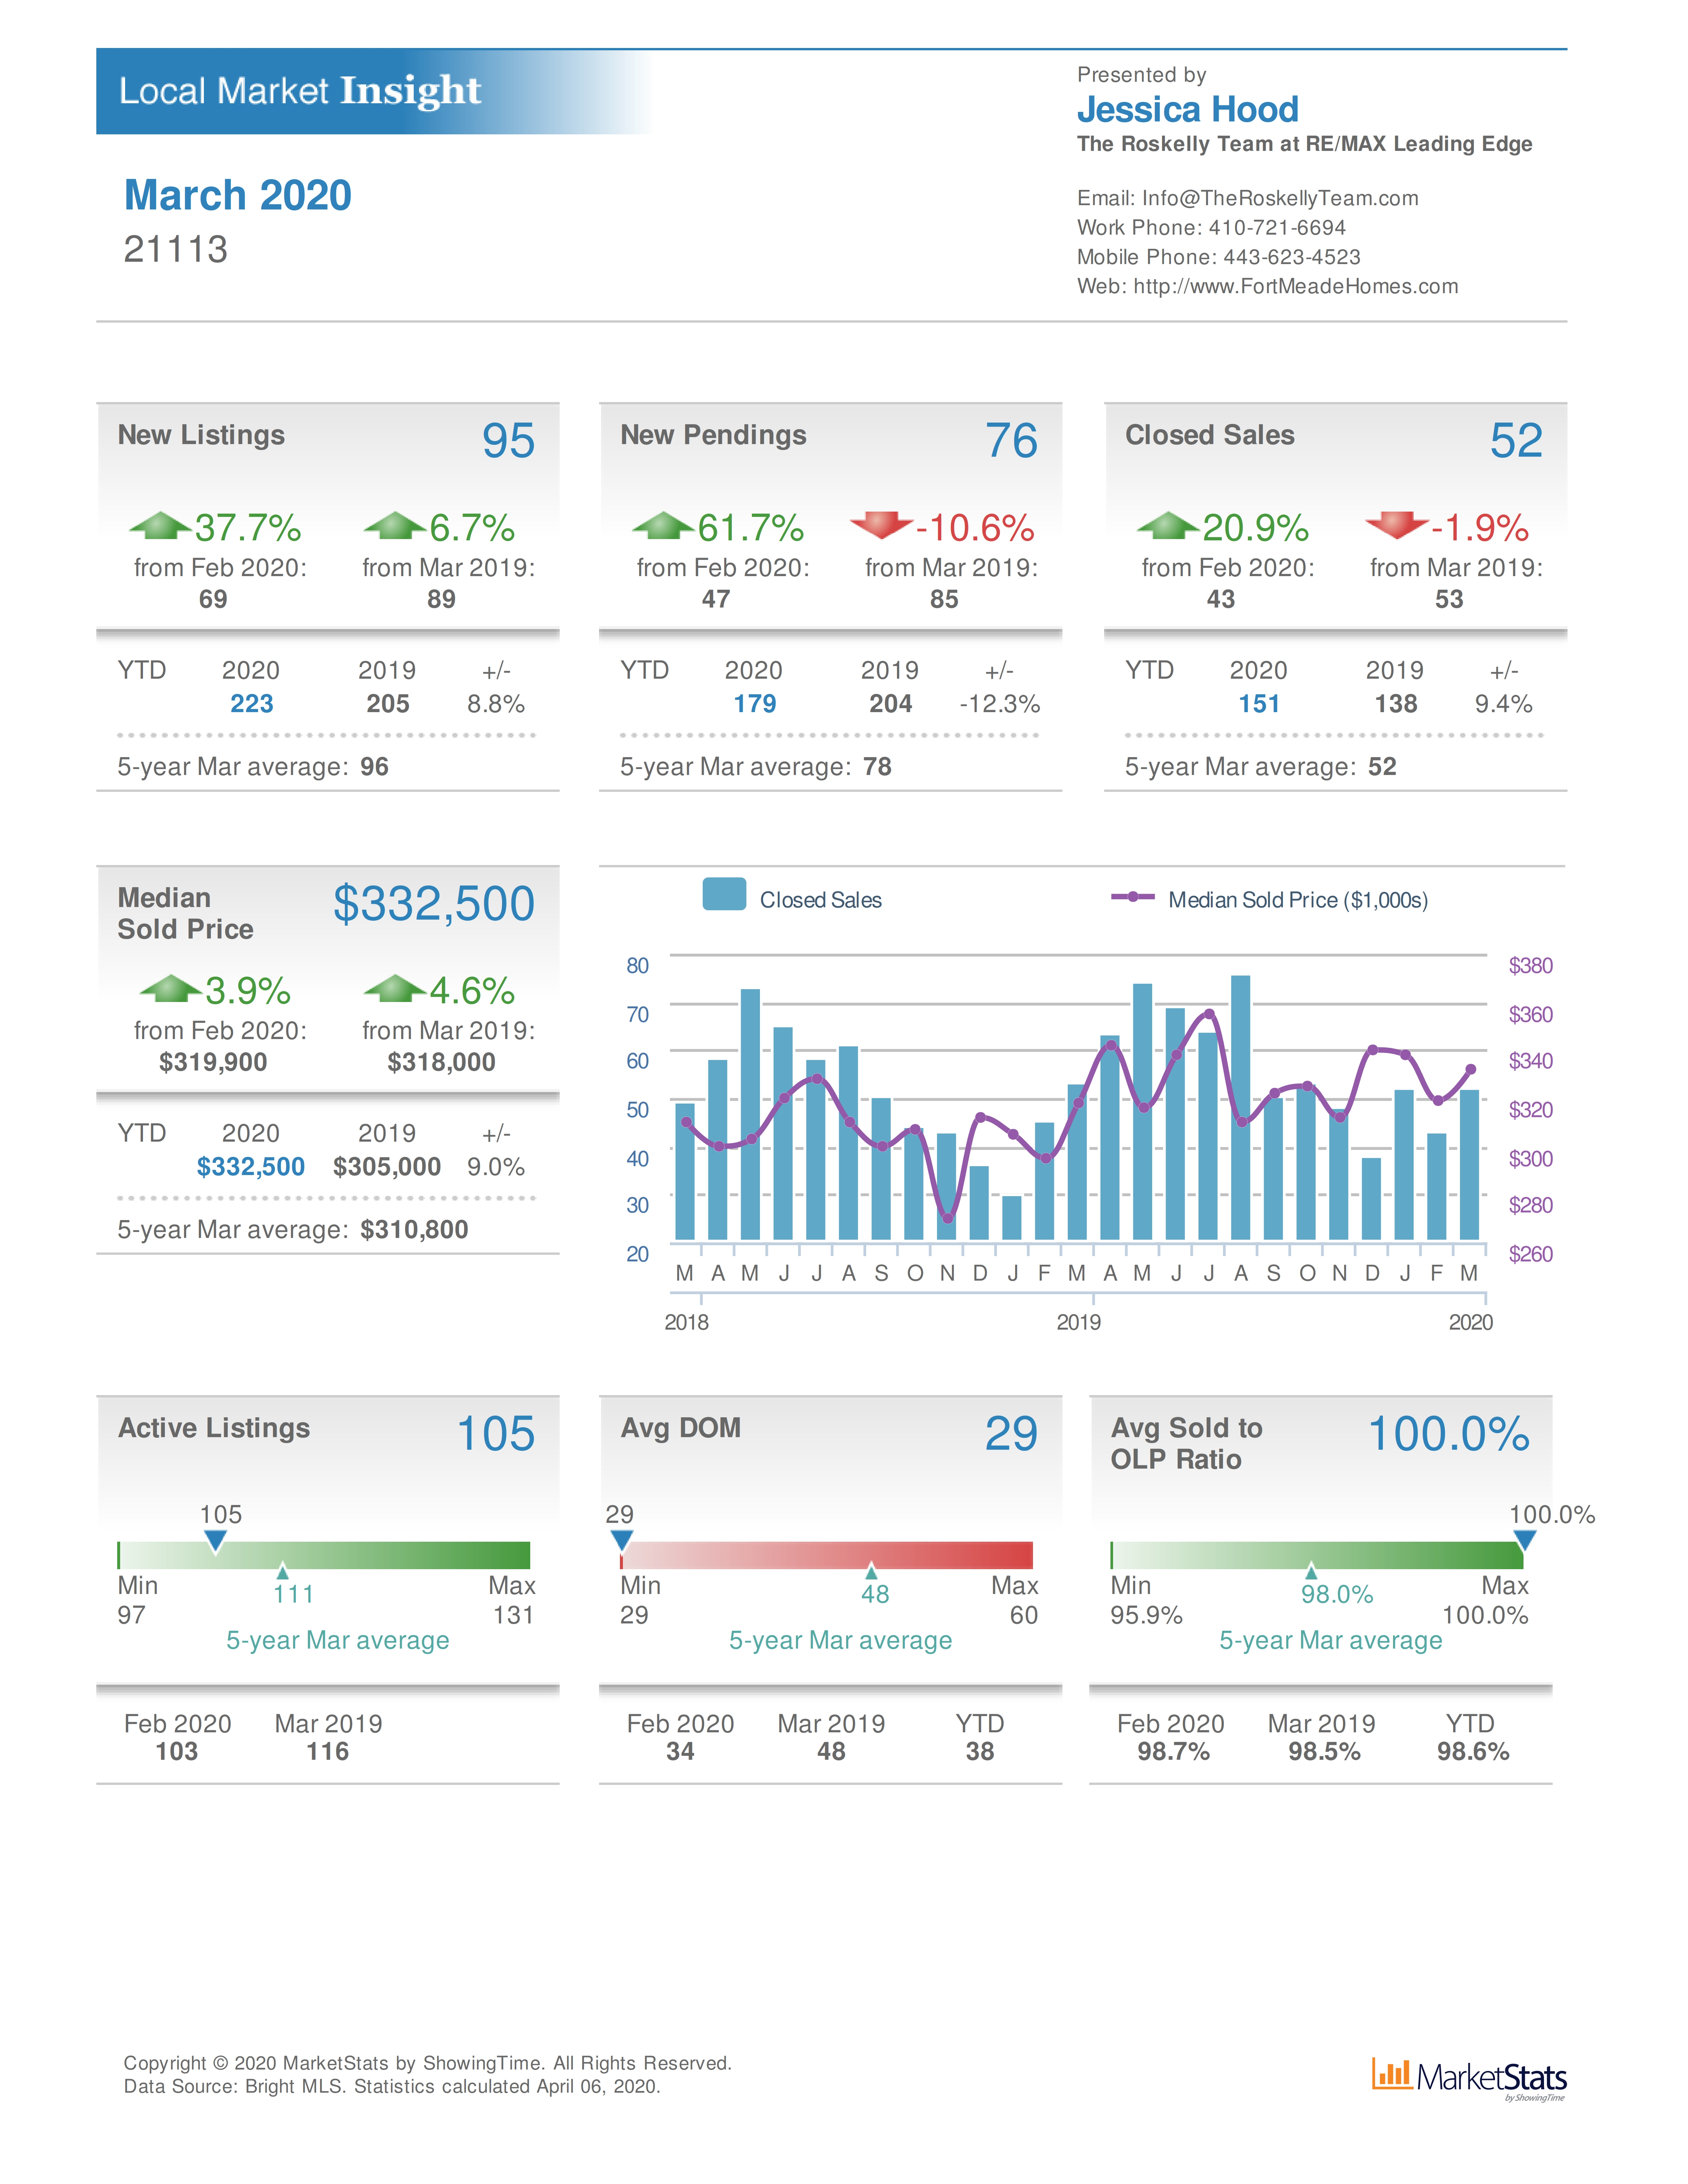 Odenton MD real estate market overview for March 2020